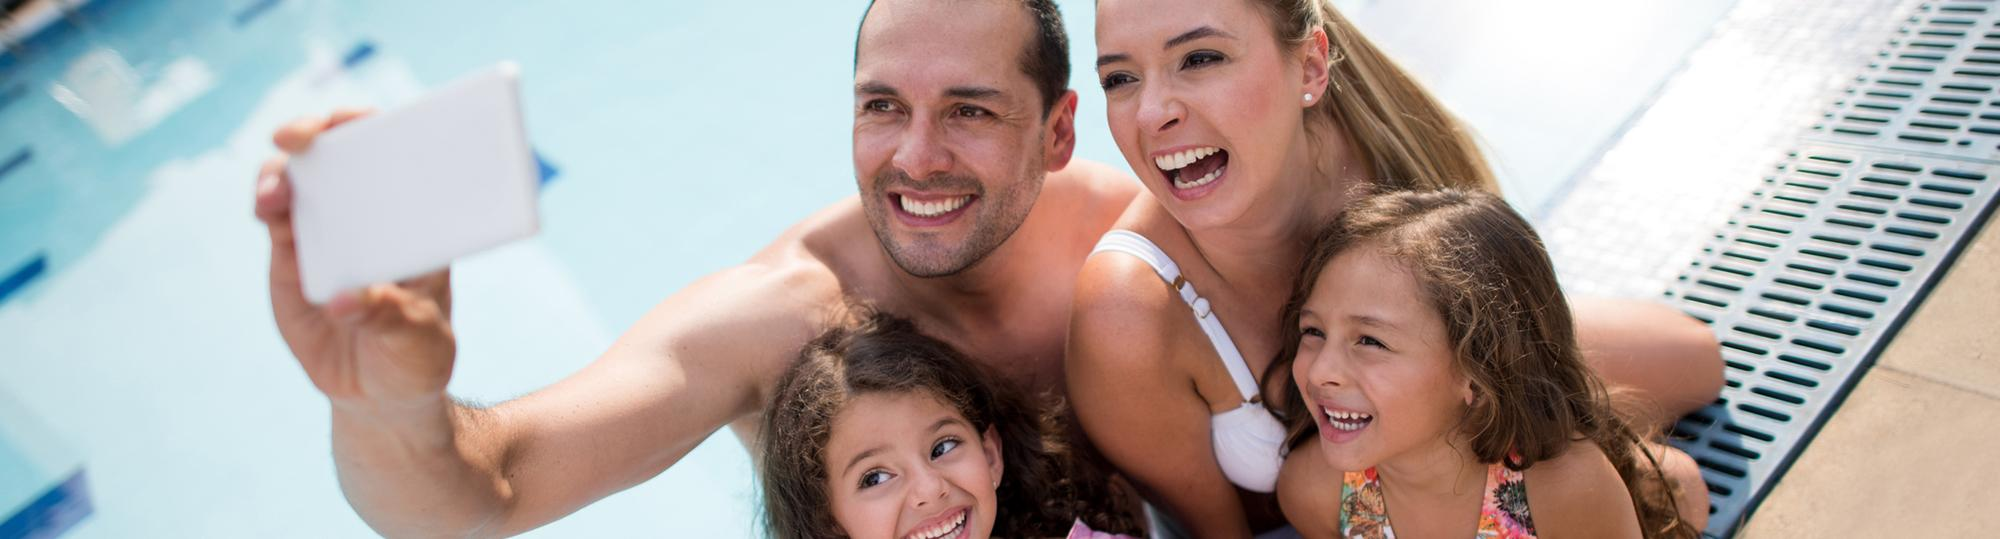 comfort inn deal hero family at pool